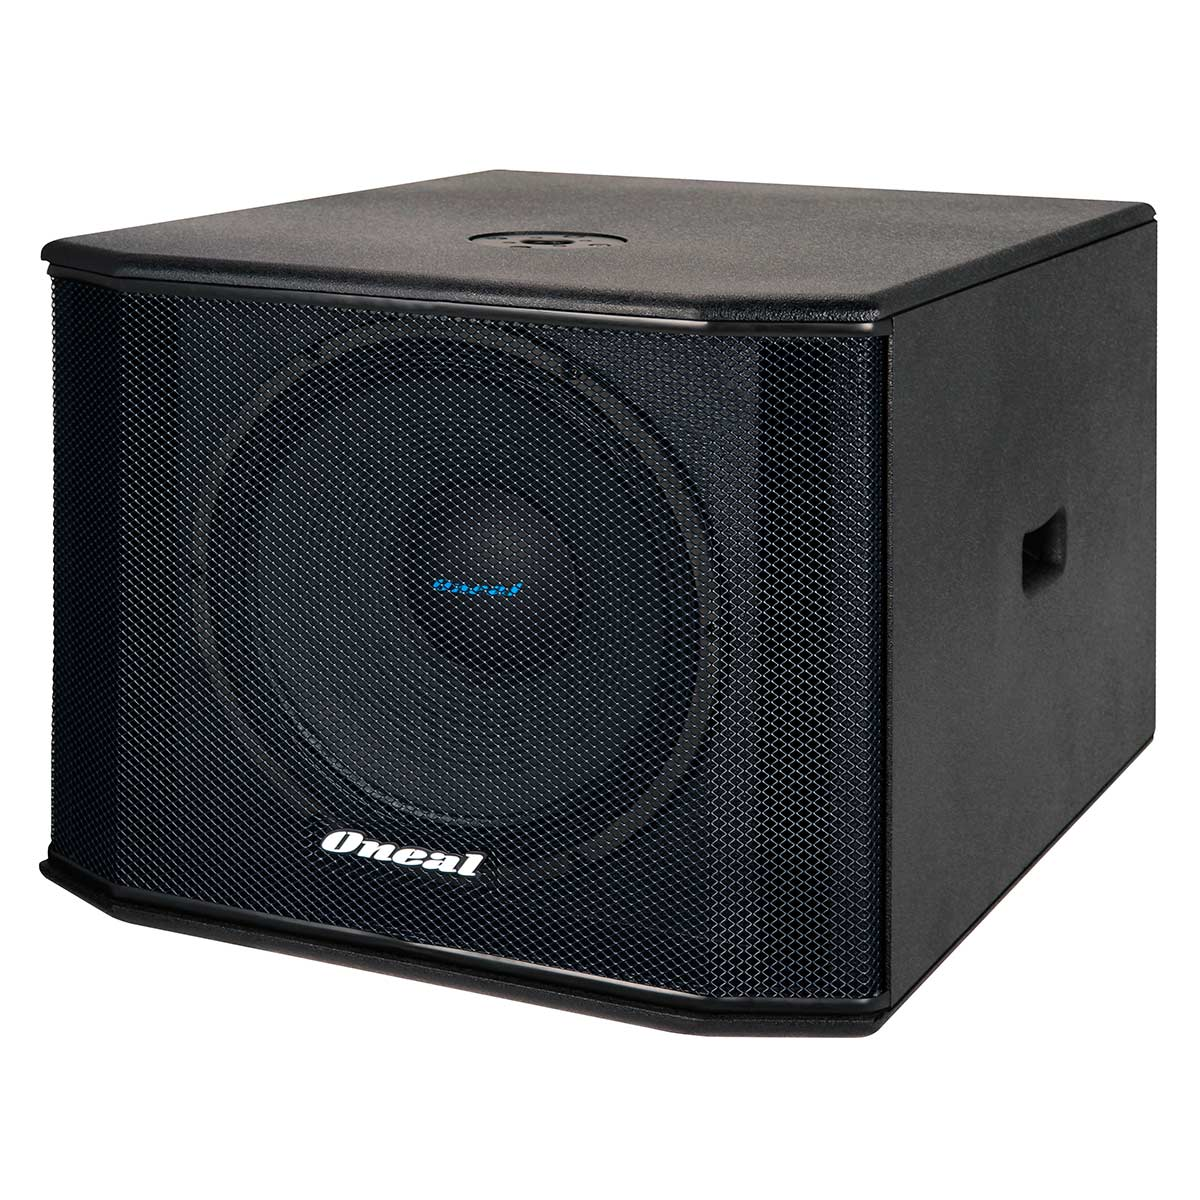 OBSB2215 - Subwoofer Passivo 300W OBSB 2215 - Oneal